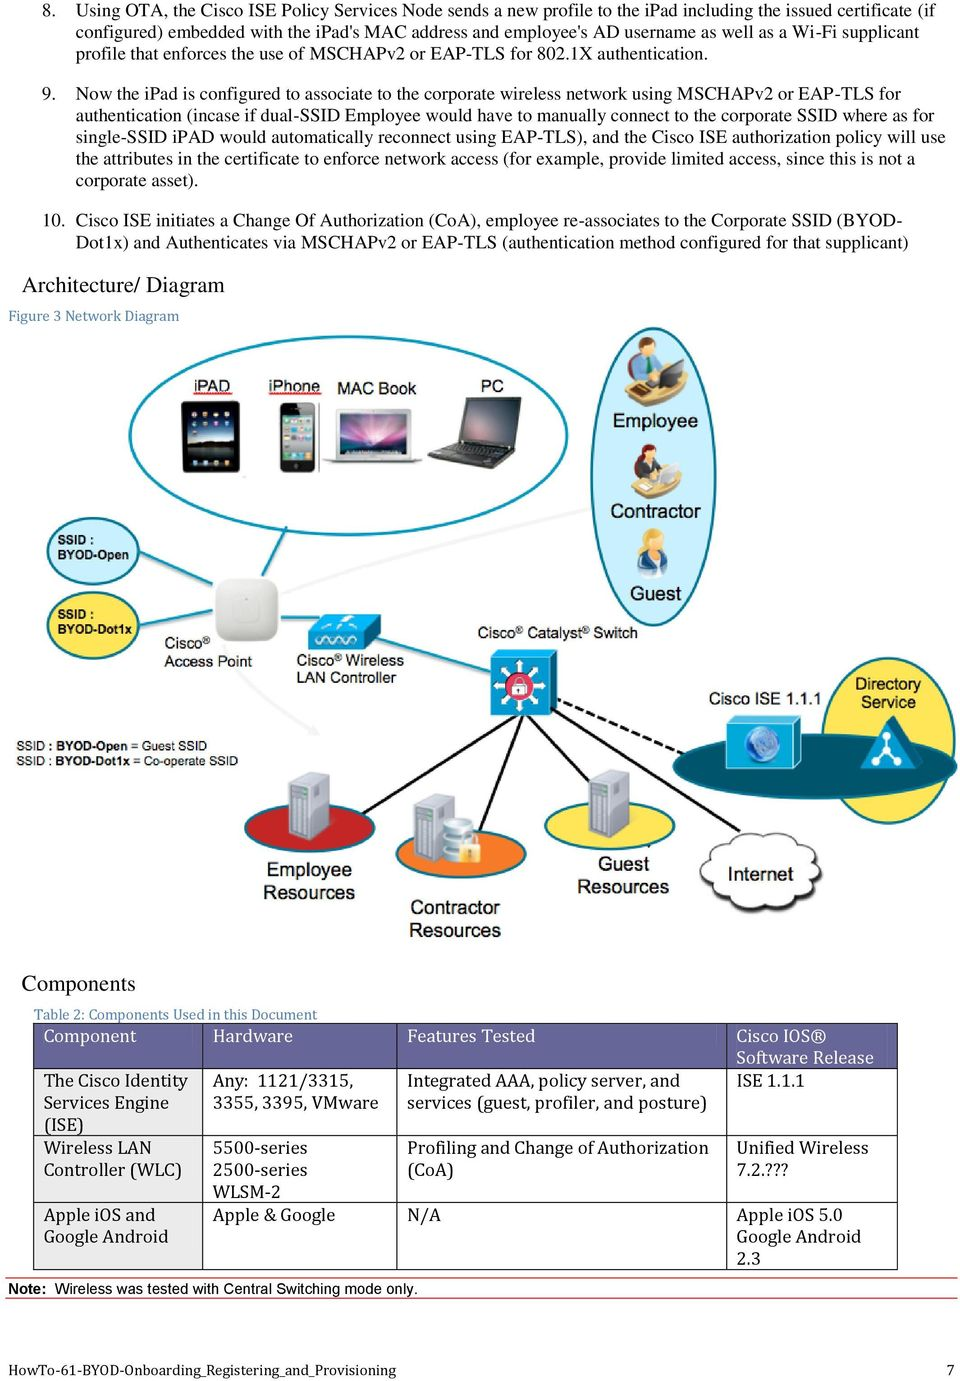 medium resolution of now the ipad is configured to associate to the corporate wireless network using mschapv2 or eap